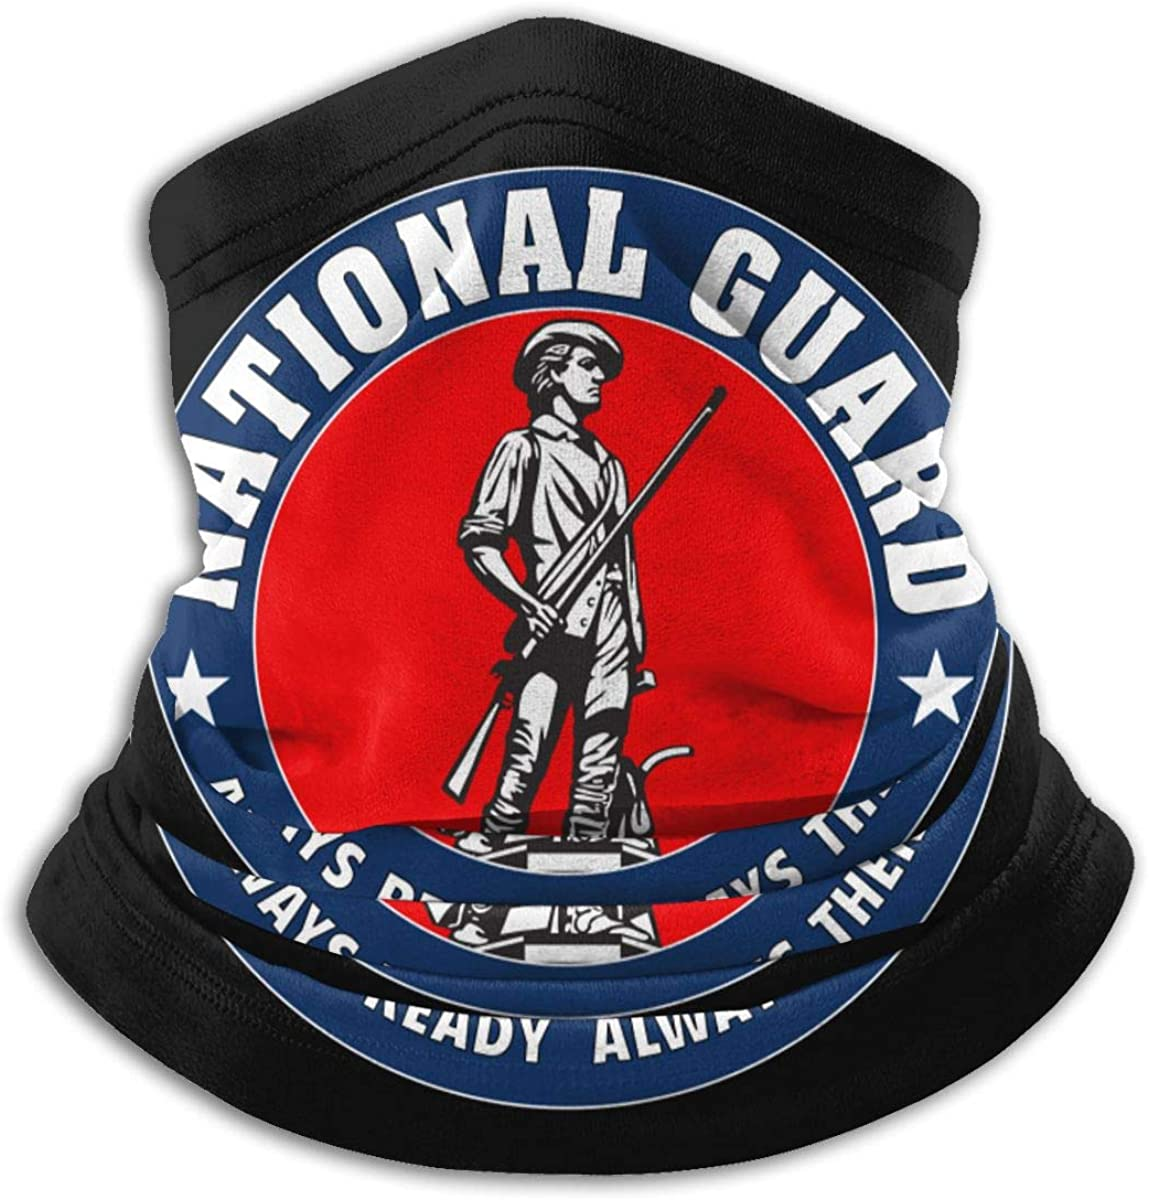 Army National Guard Trained Warmer Scarf Soft Elastic For Men Women Fleece Skiing Face Scarf